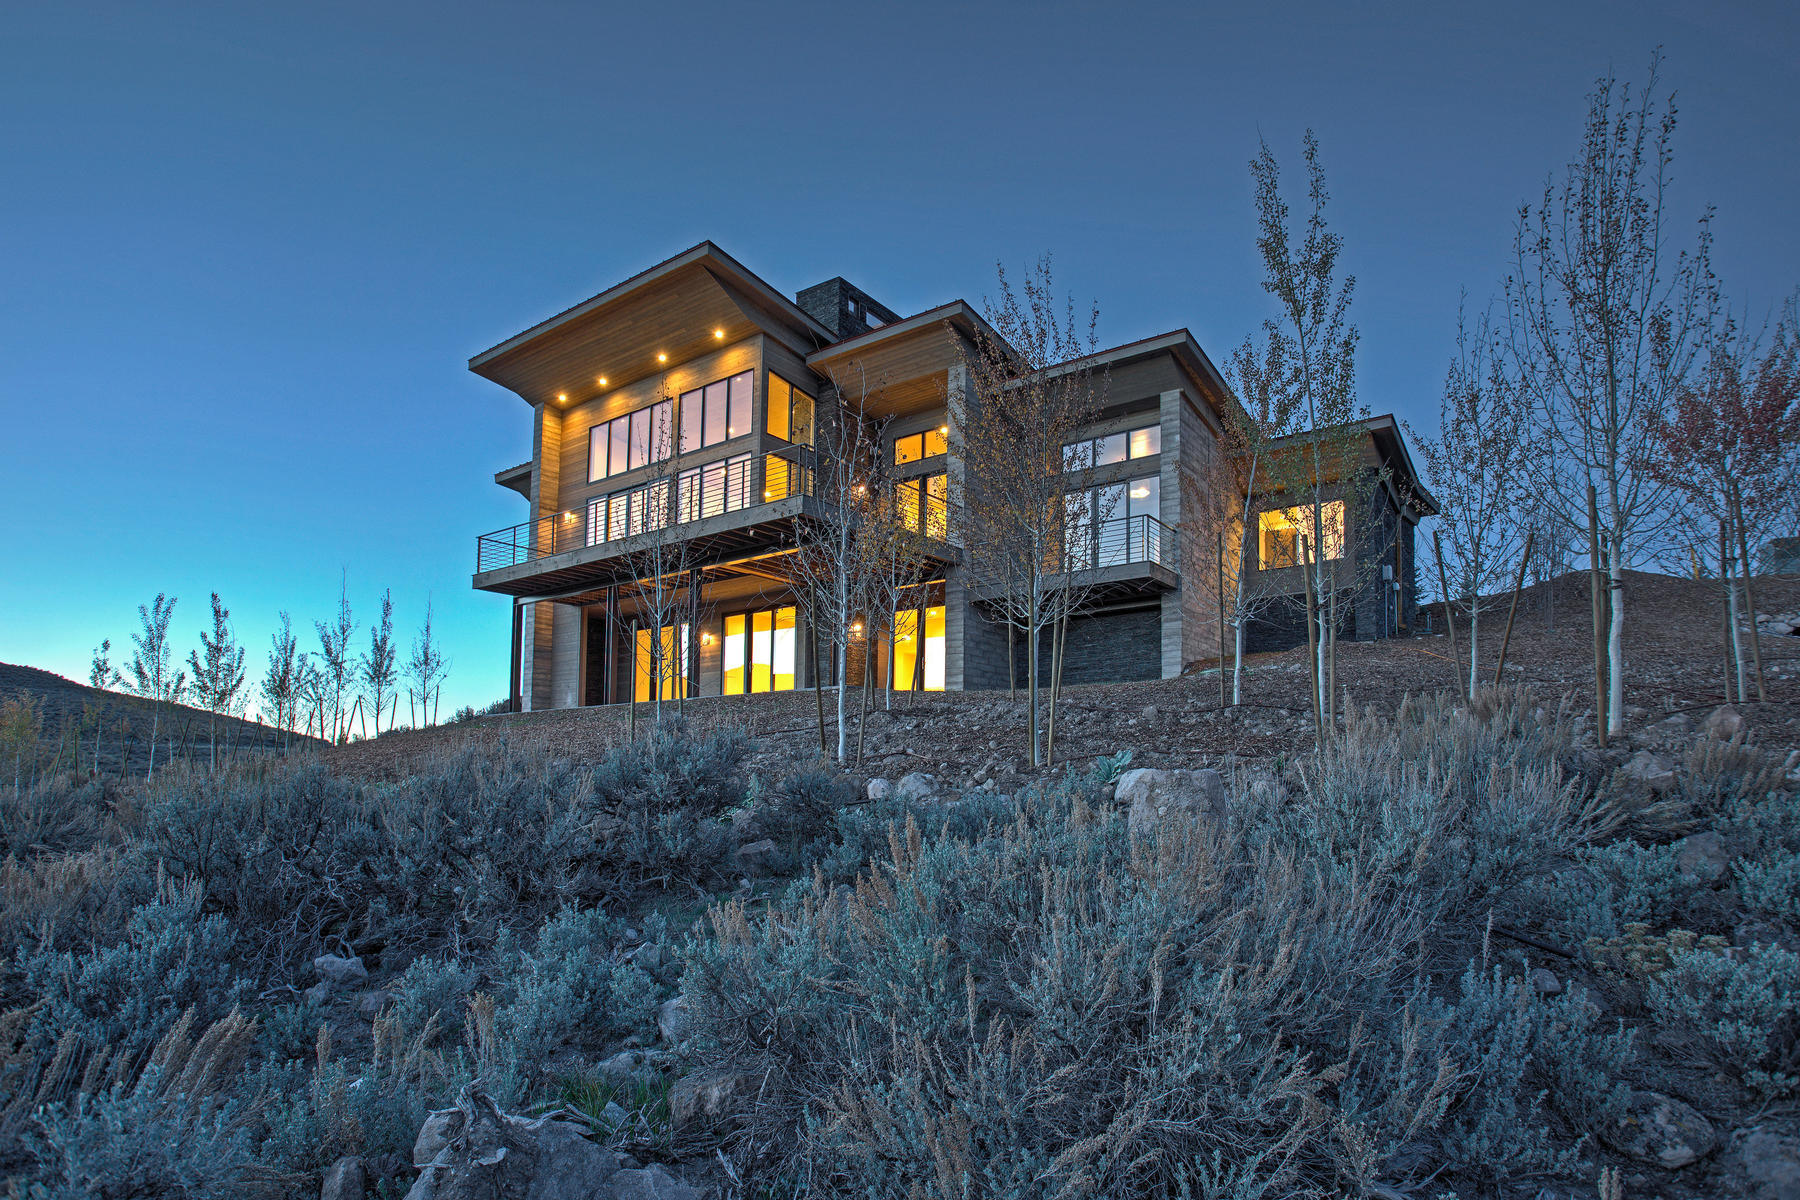 단독 가정 주택 용 매매 에 Modern Luxury In Your Mountain Escape - Promontory 6699 Golden Bear Loop West Park City, 유타, 84098 미국